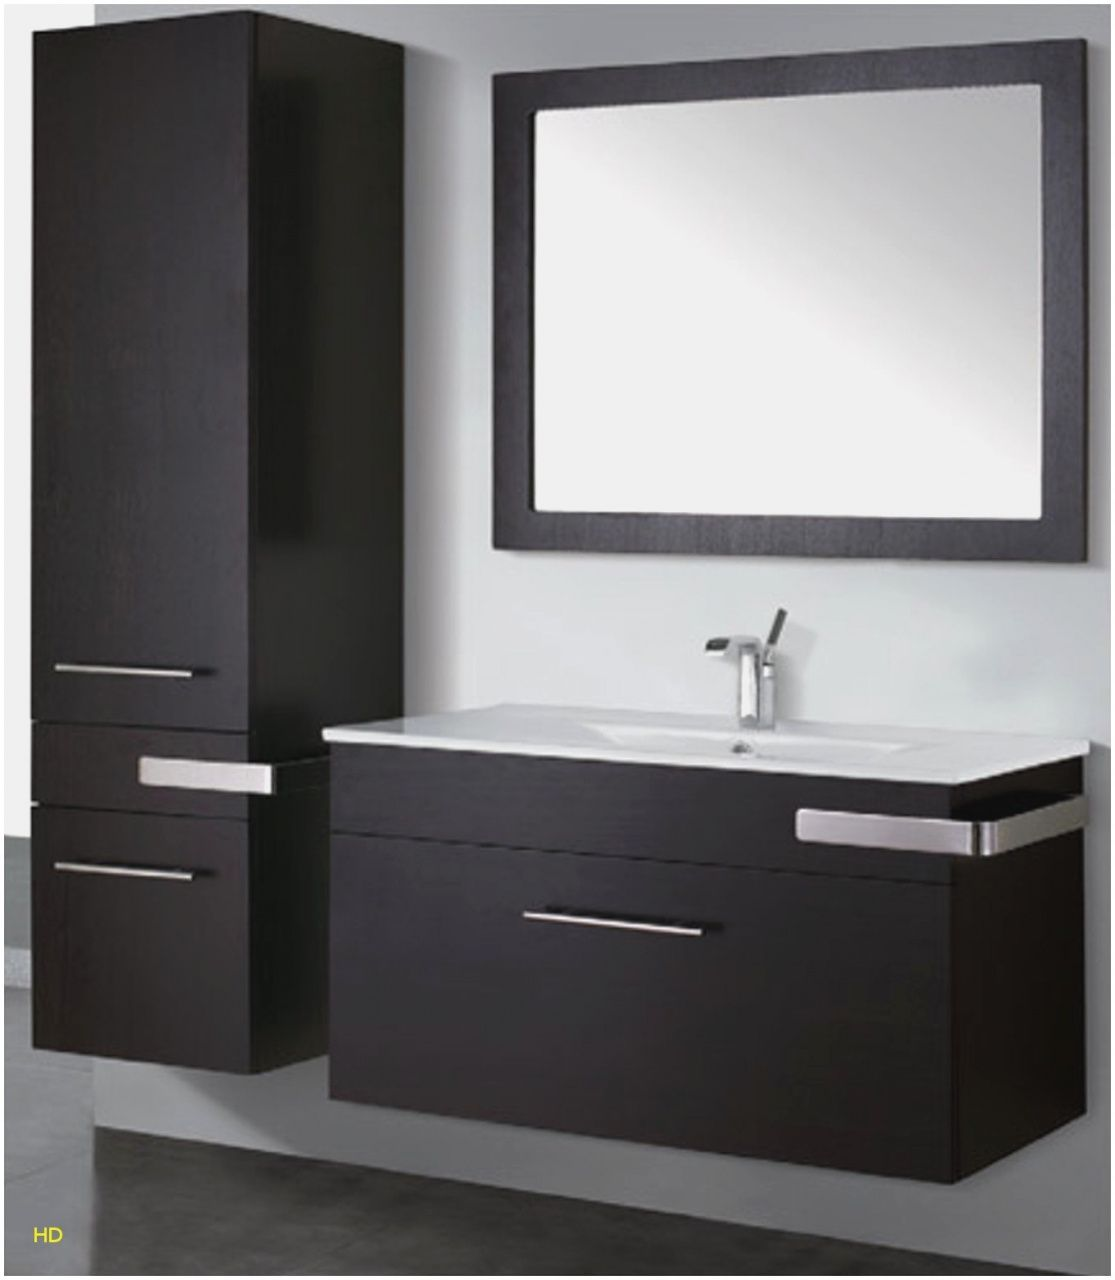 201 Meuble Salle De Bain Cedeo Lighted Bathroom Mirror Bathroom Mirror Bathroom Vanity